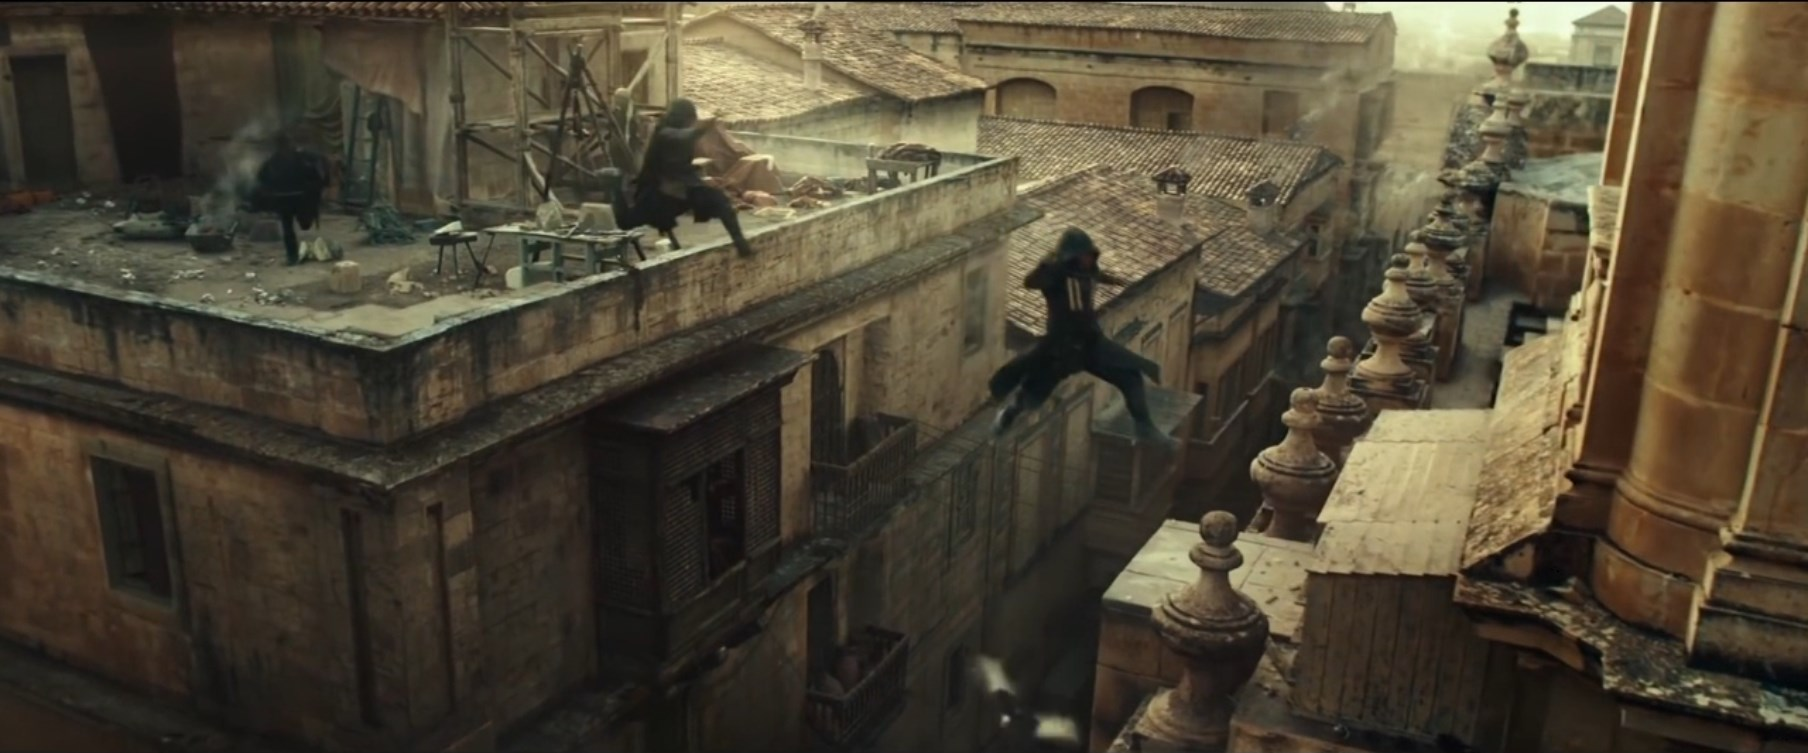 Bild aus dem Film: Assassin´s Creed